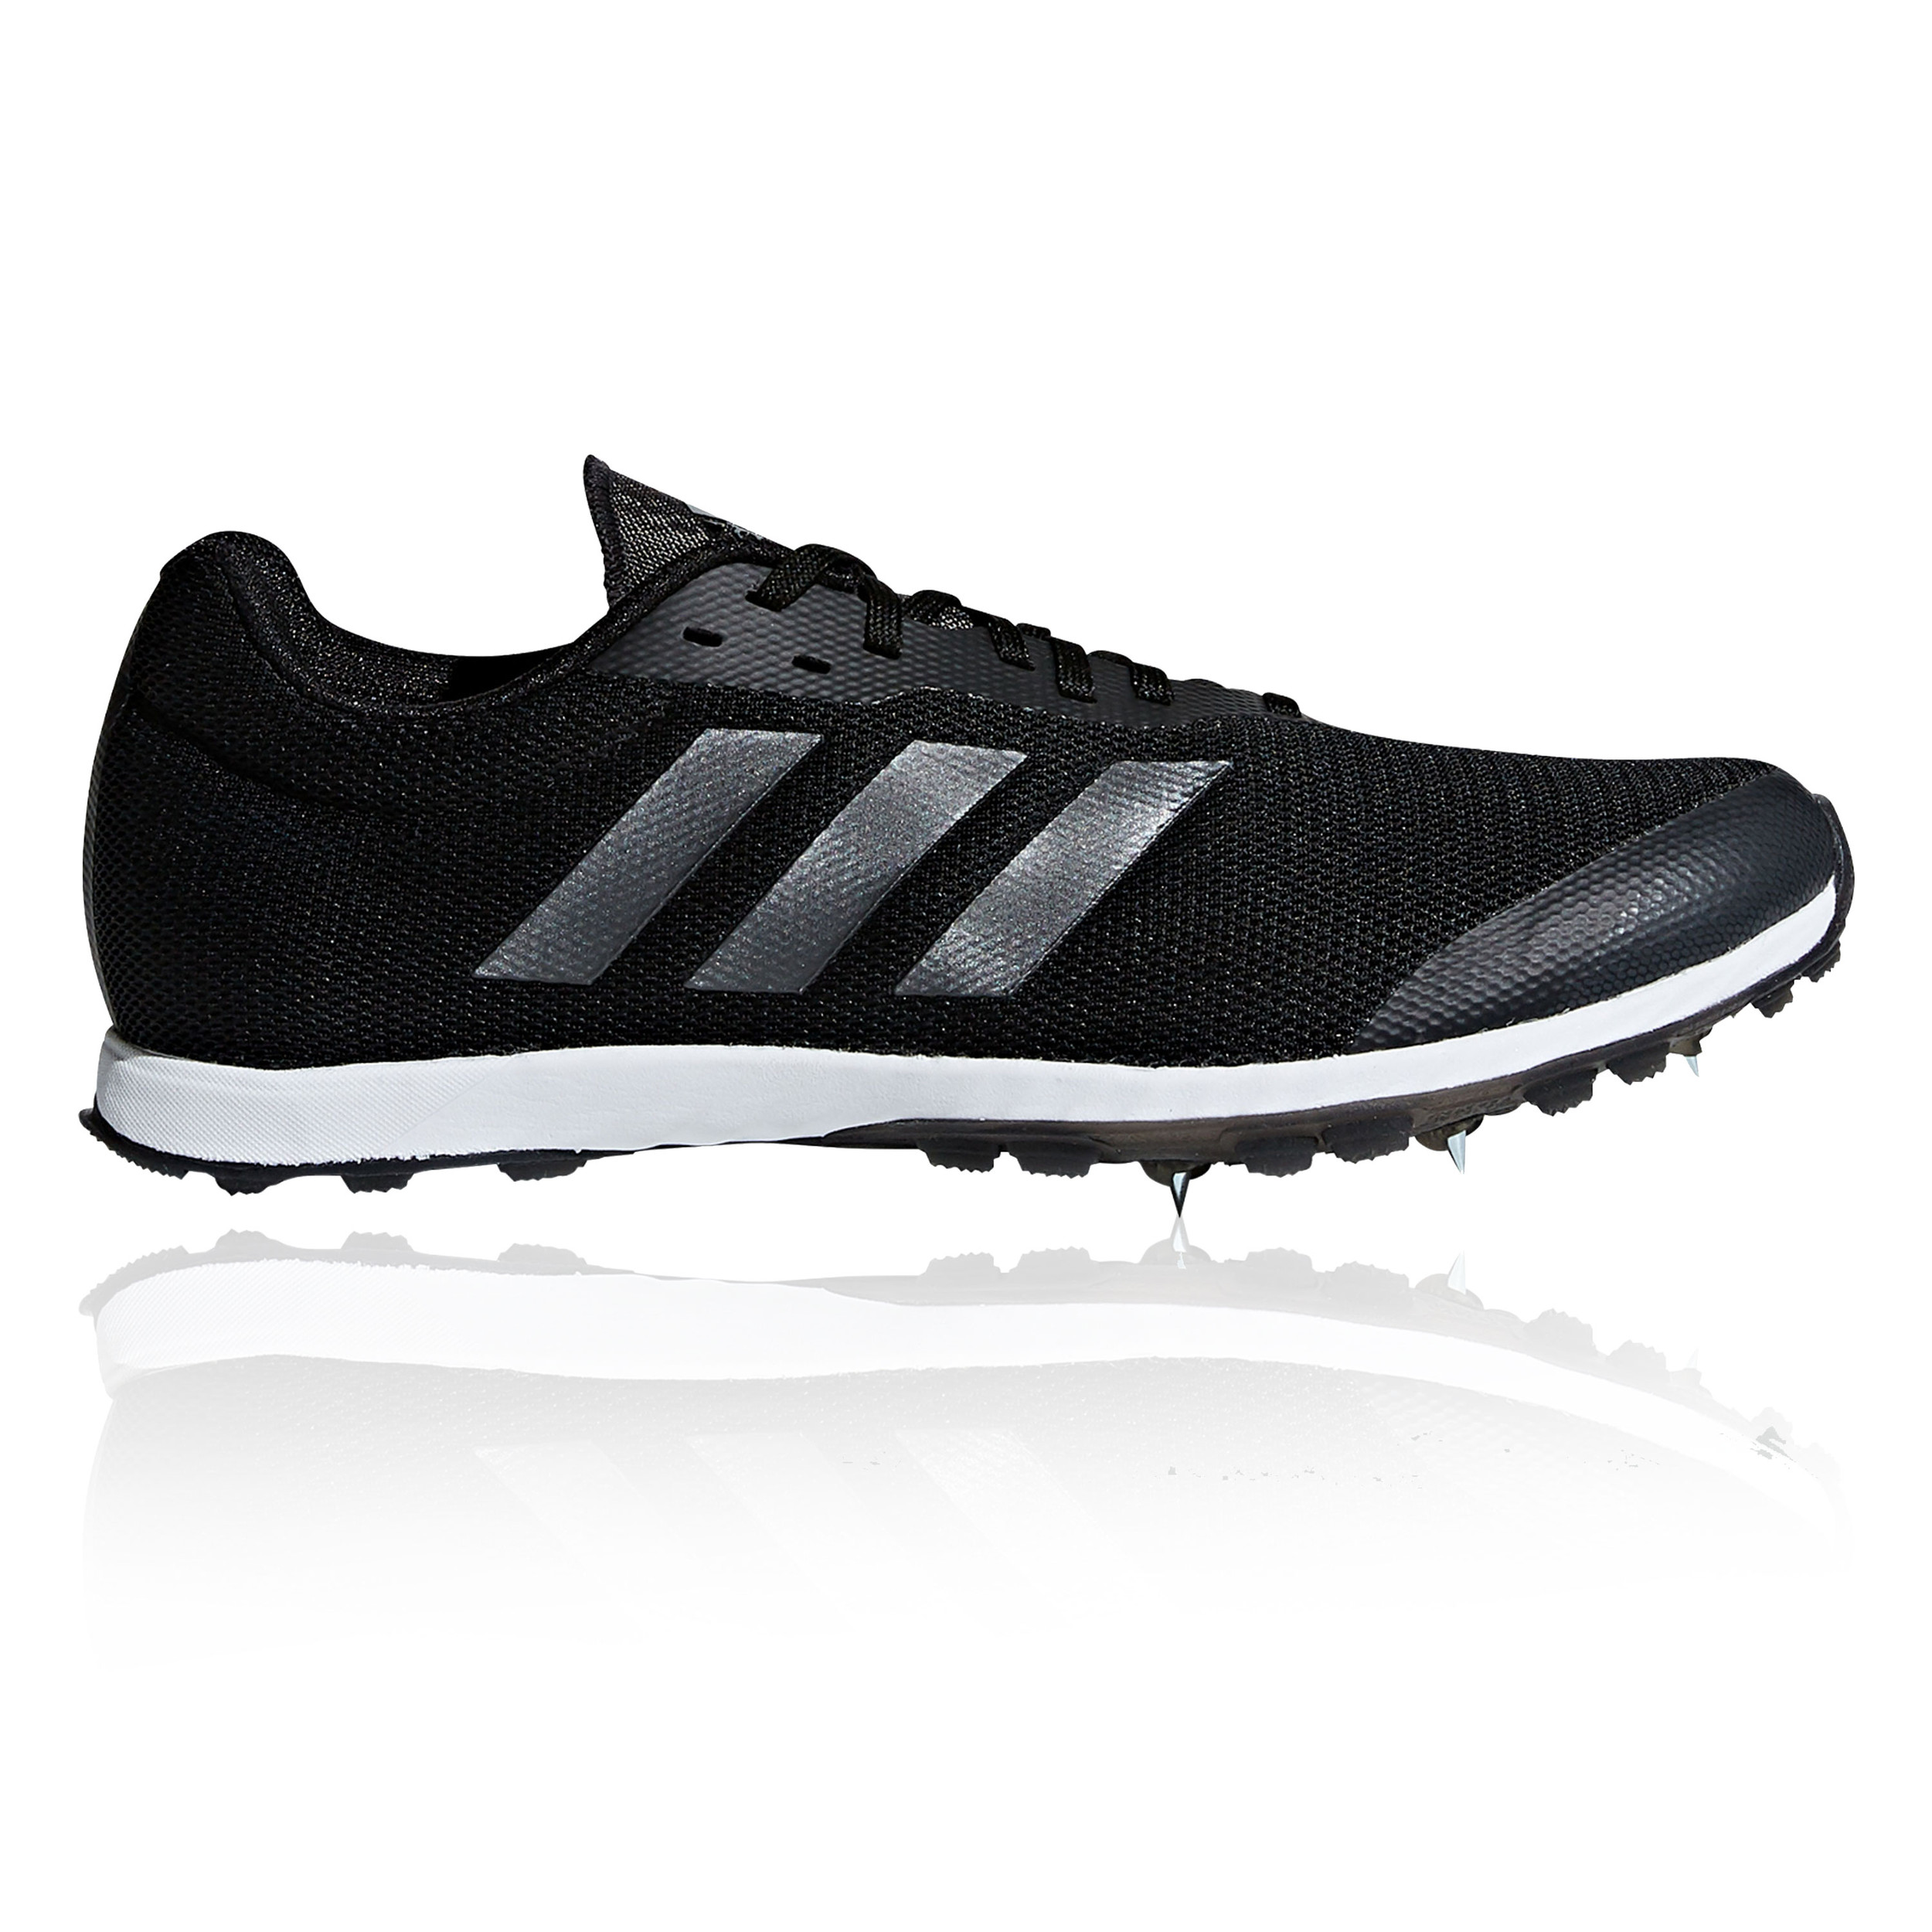 Details about adidas Womens XCS Shoes Black Sports Running Breathable Lightweight